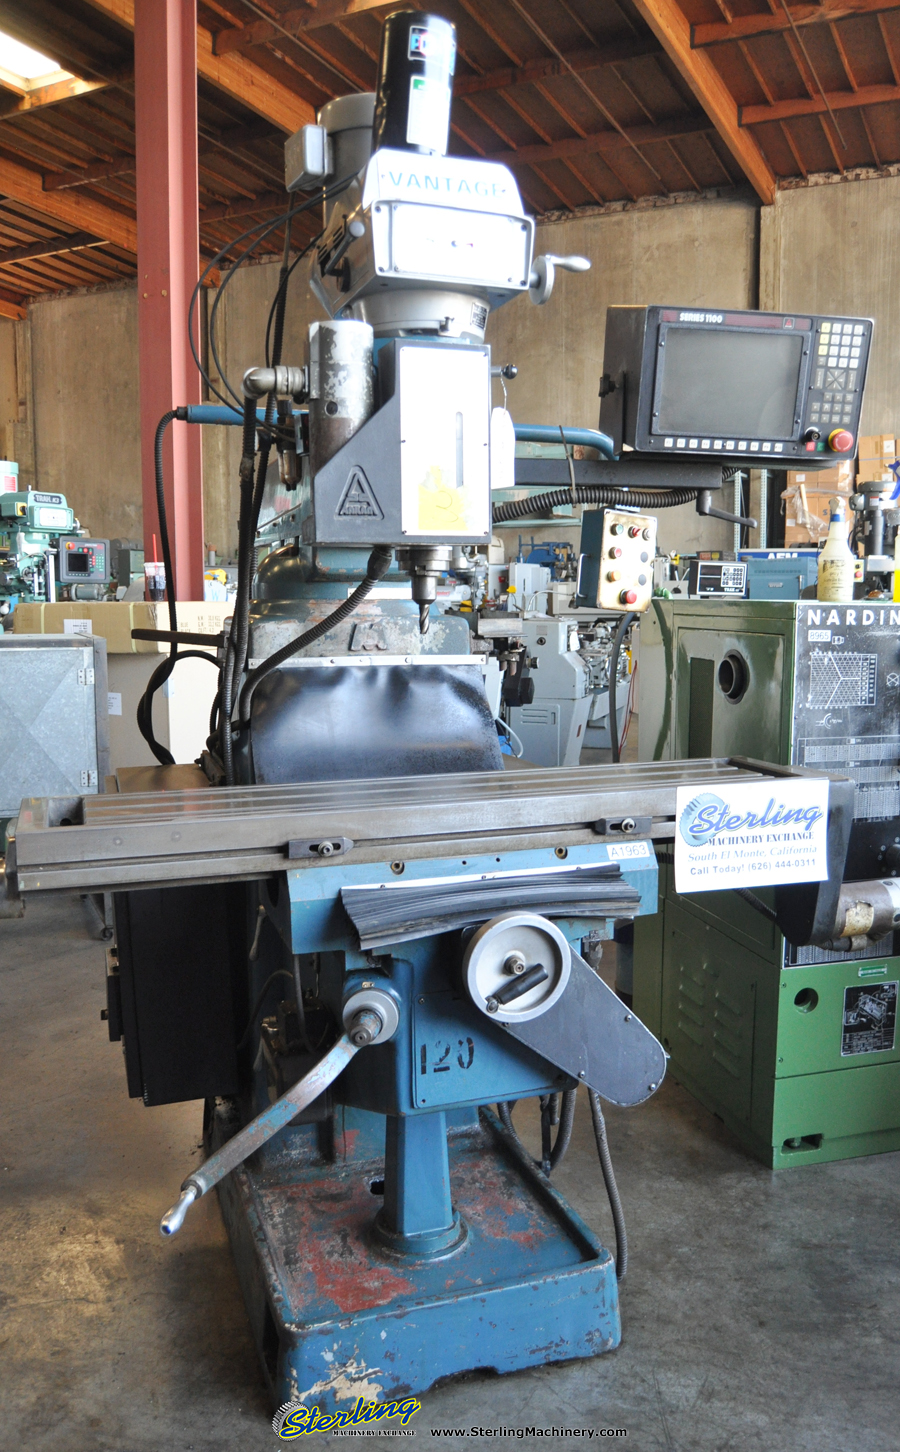 Used Vantage 3 Axis Cnc Vertical Milling Machine Needs